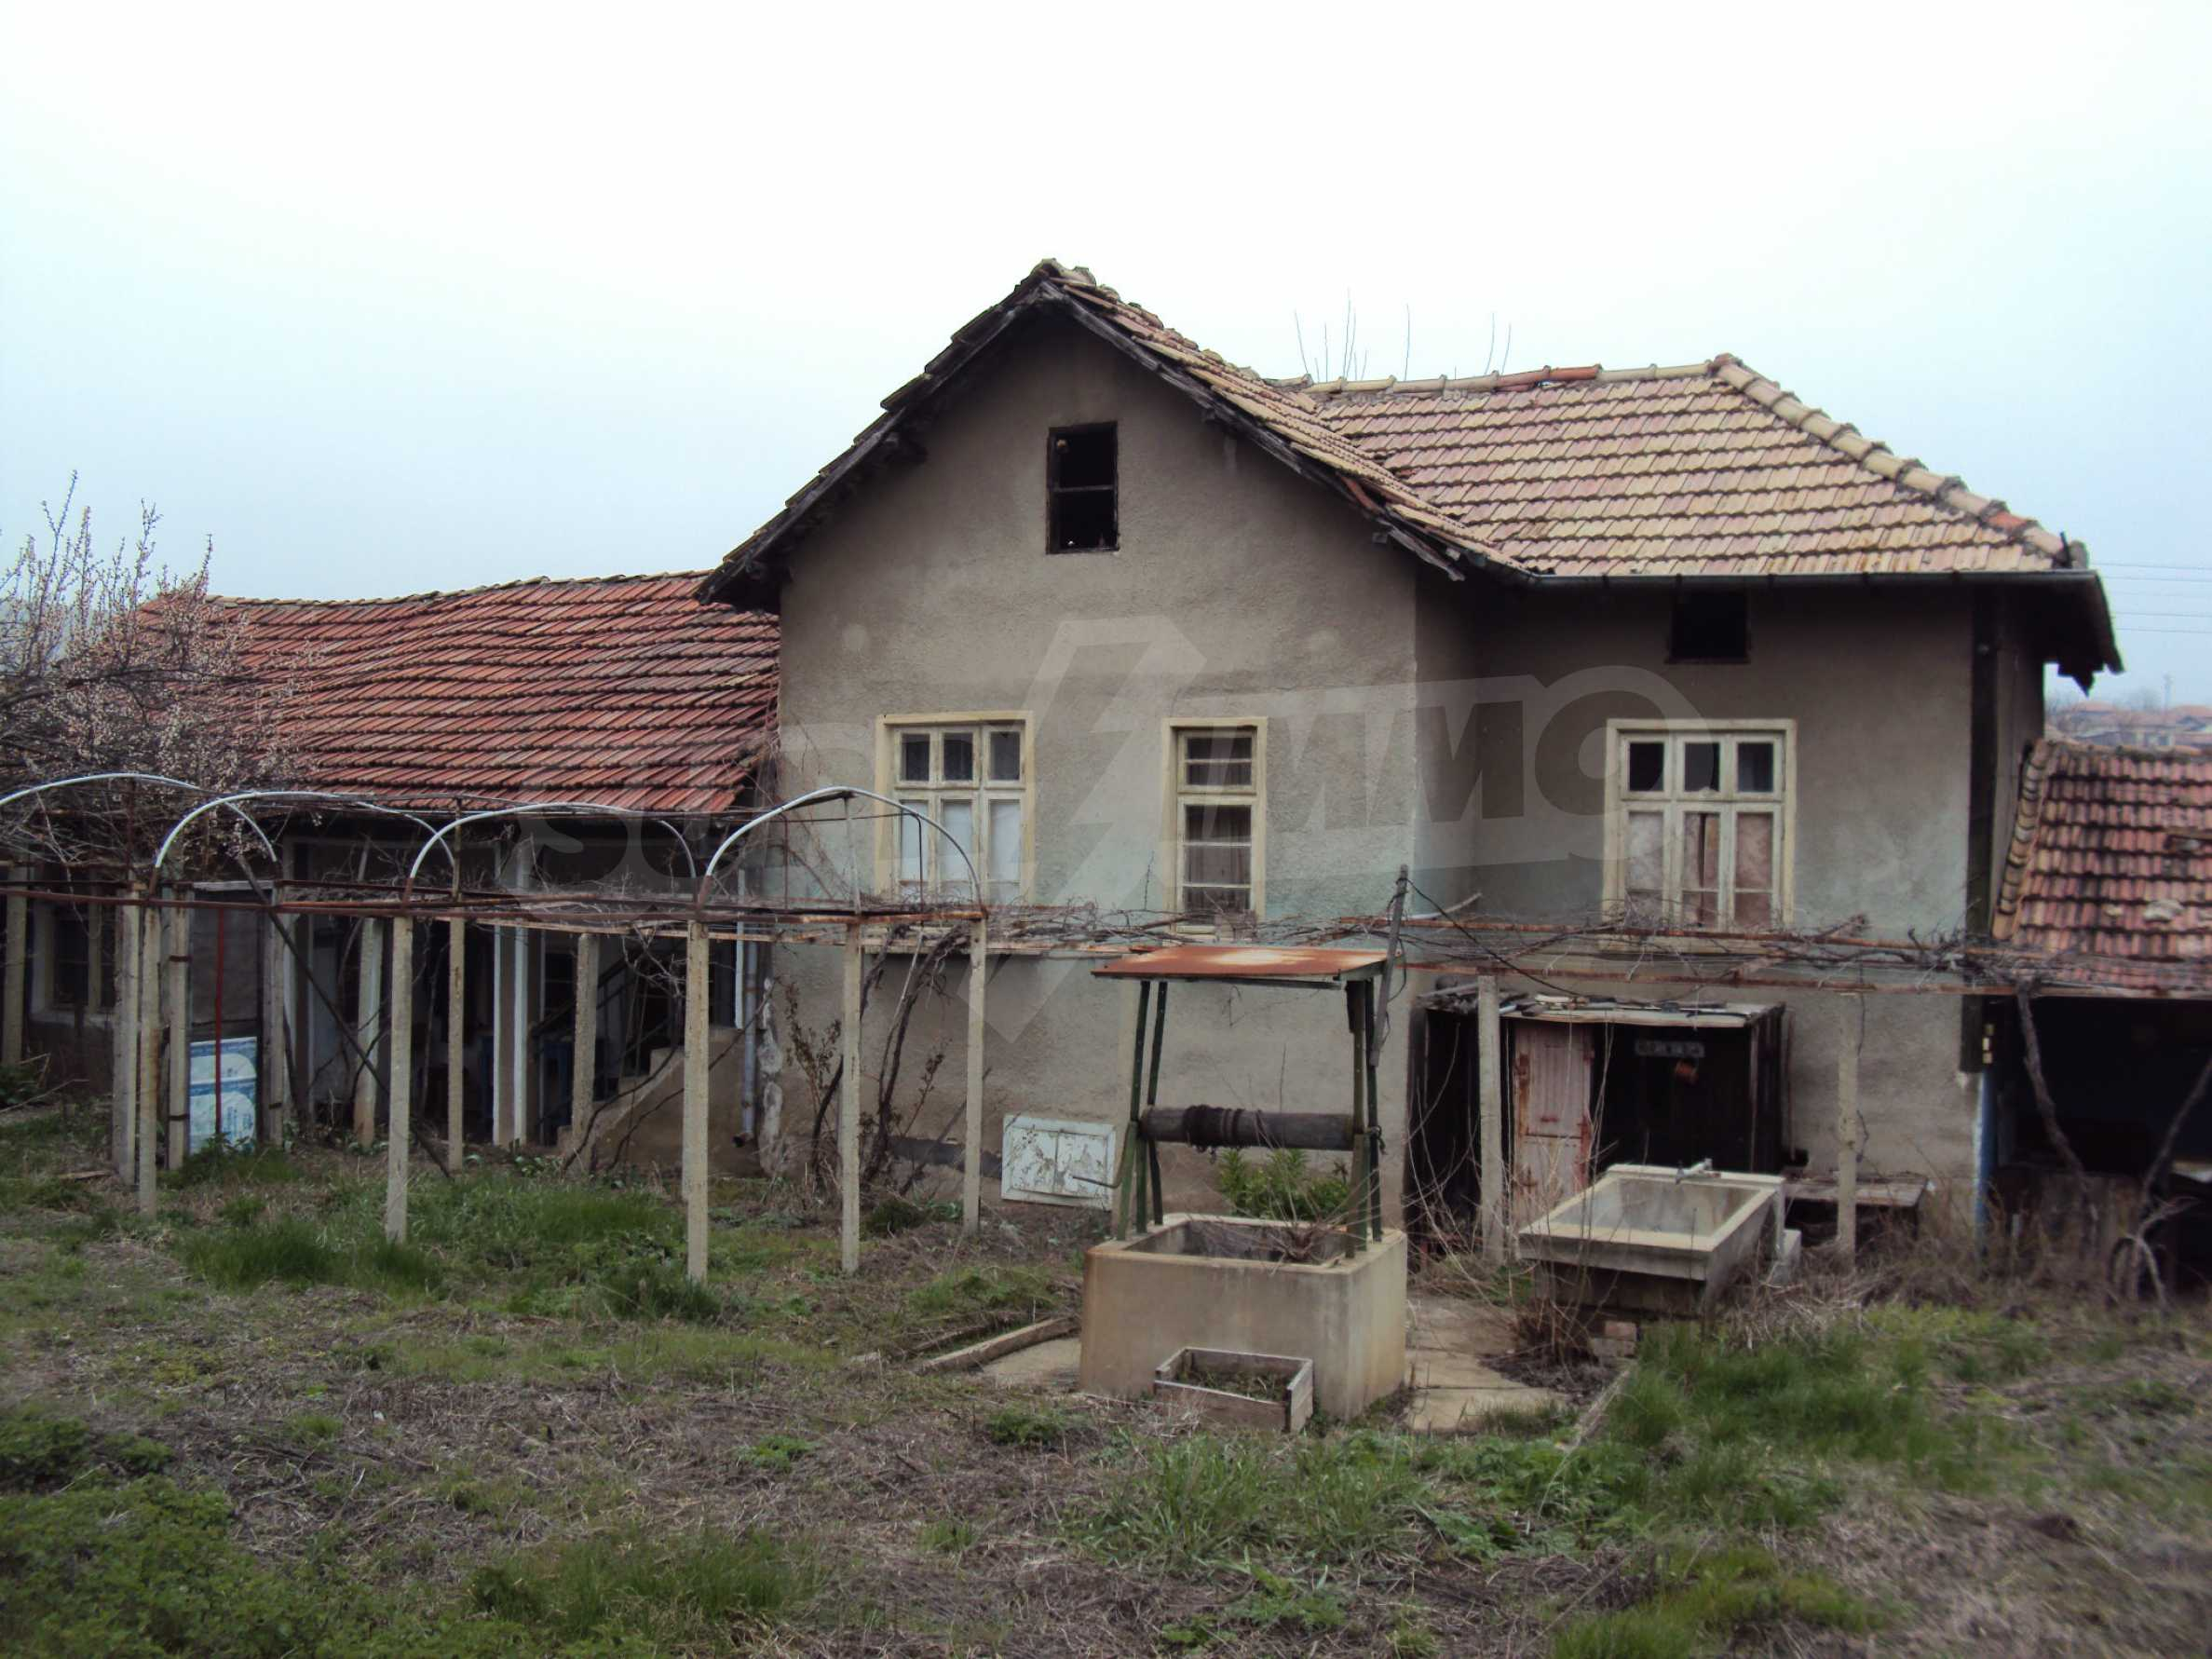 Brick house in a village located 8 km from Pavlikeni